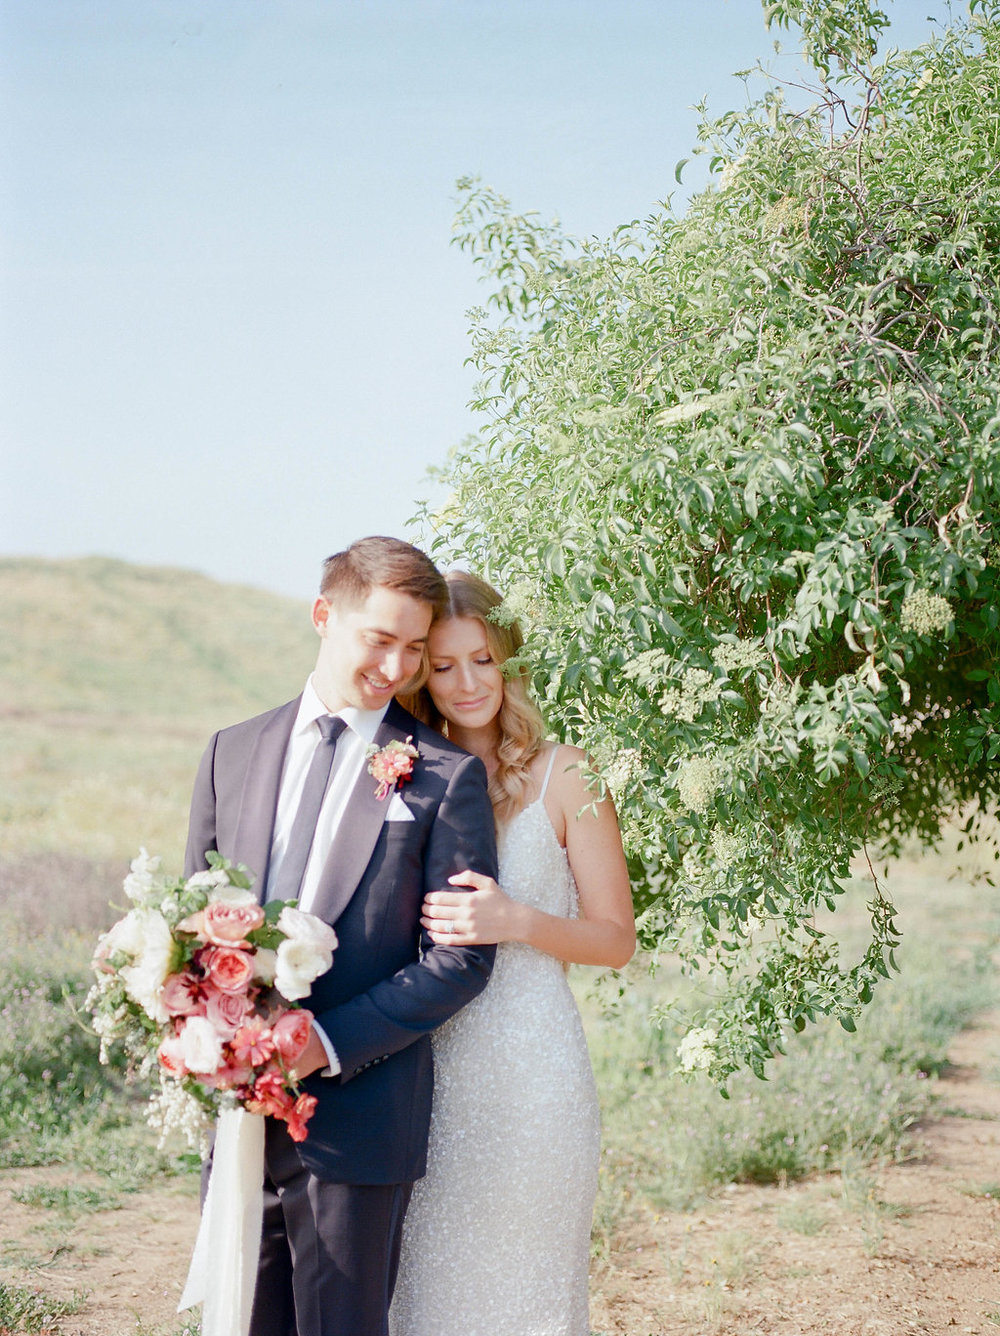 California Hills Session | Featured on The White Wren Irvine, CA